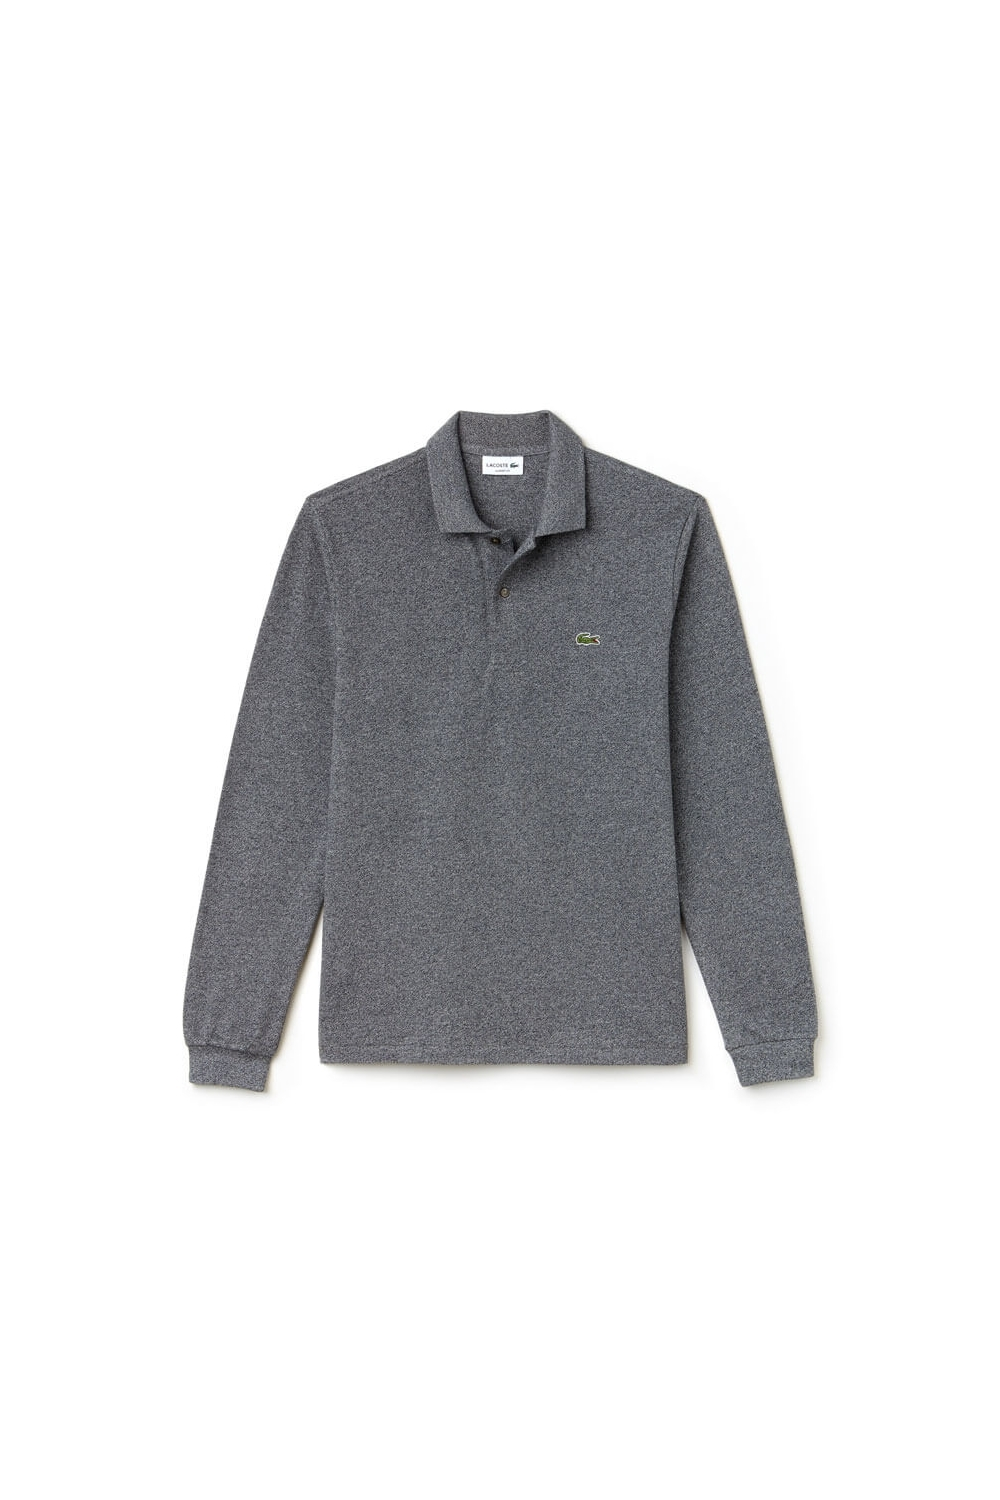 39826602f Lacoste Polo Shirt Long Sleeved in Grey Marl L1313 SXY